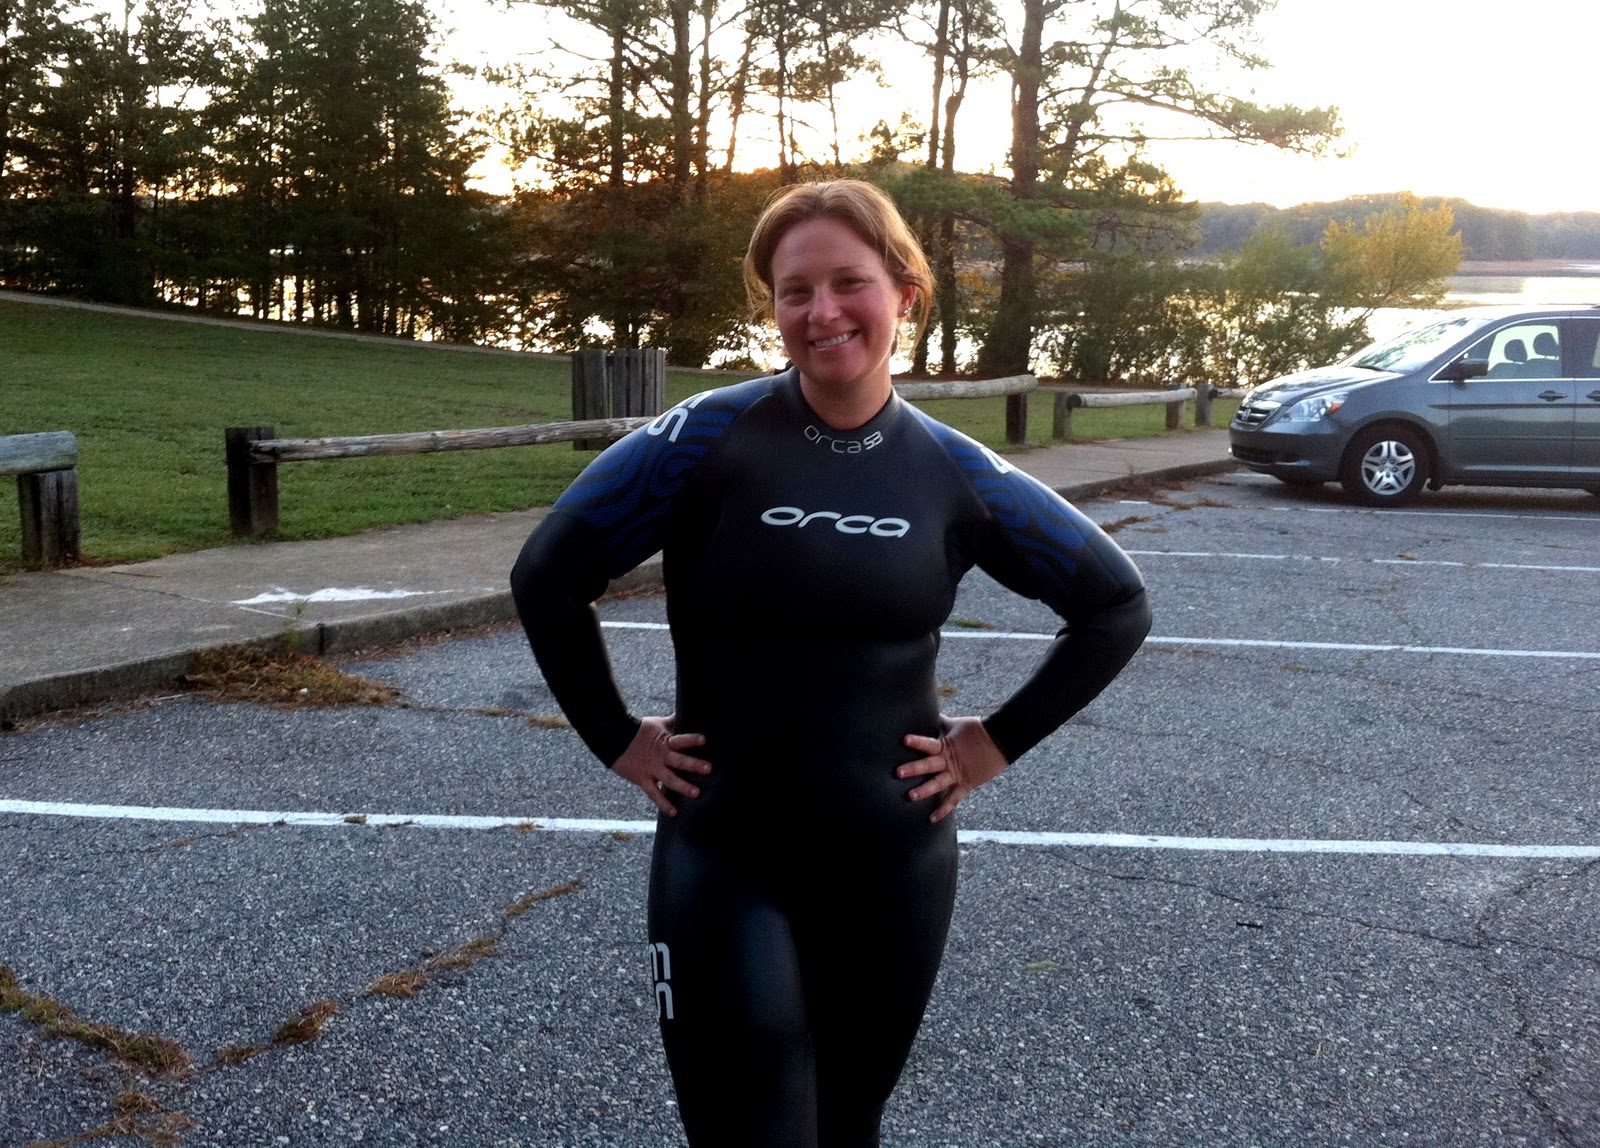 Consider, that mom in a wetsuit join told